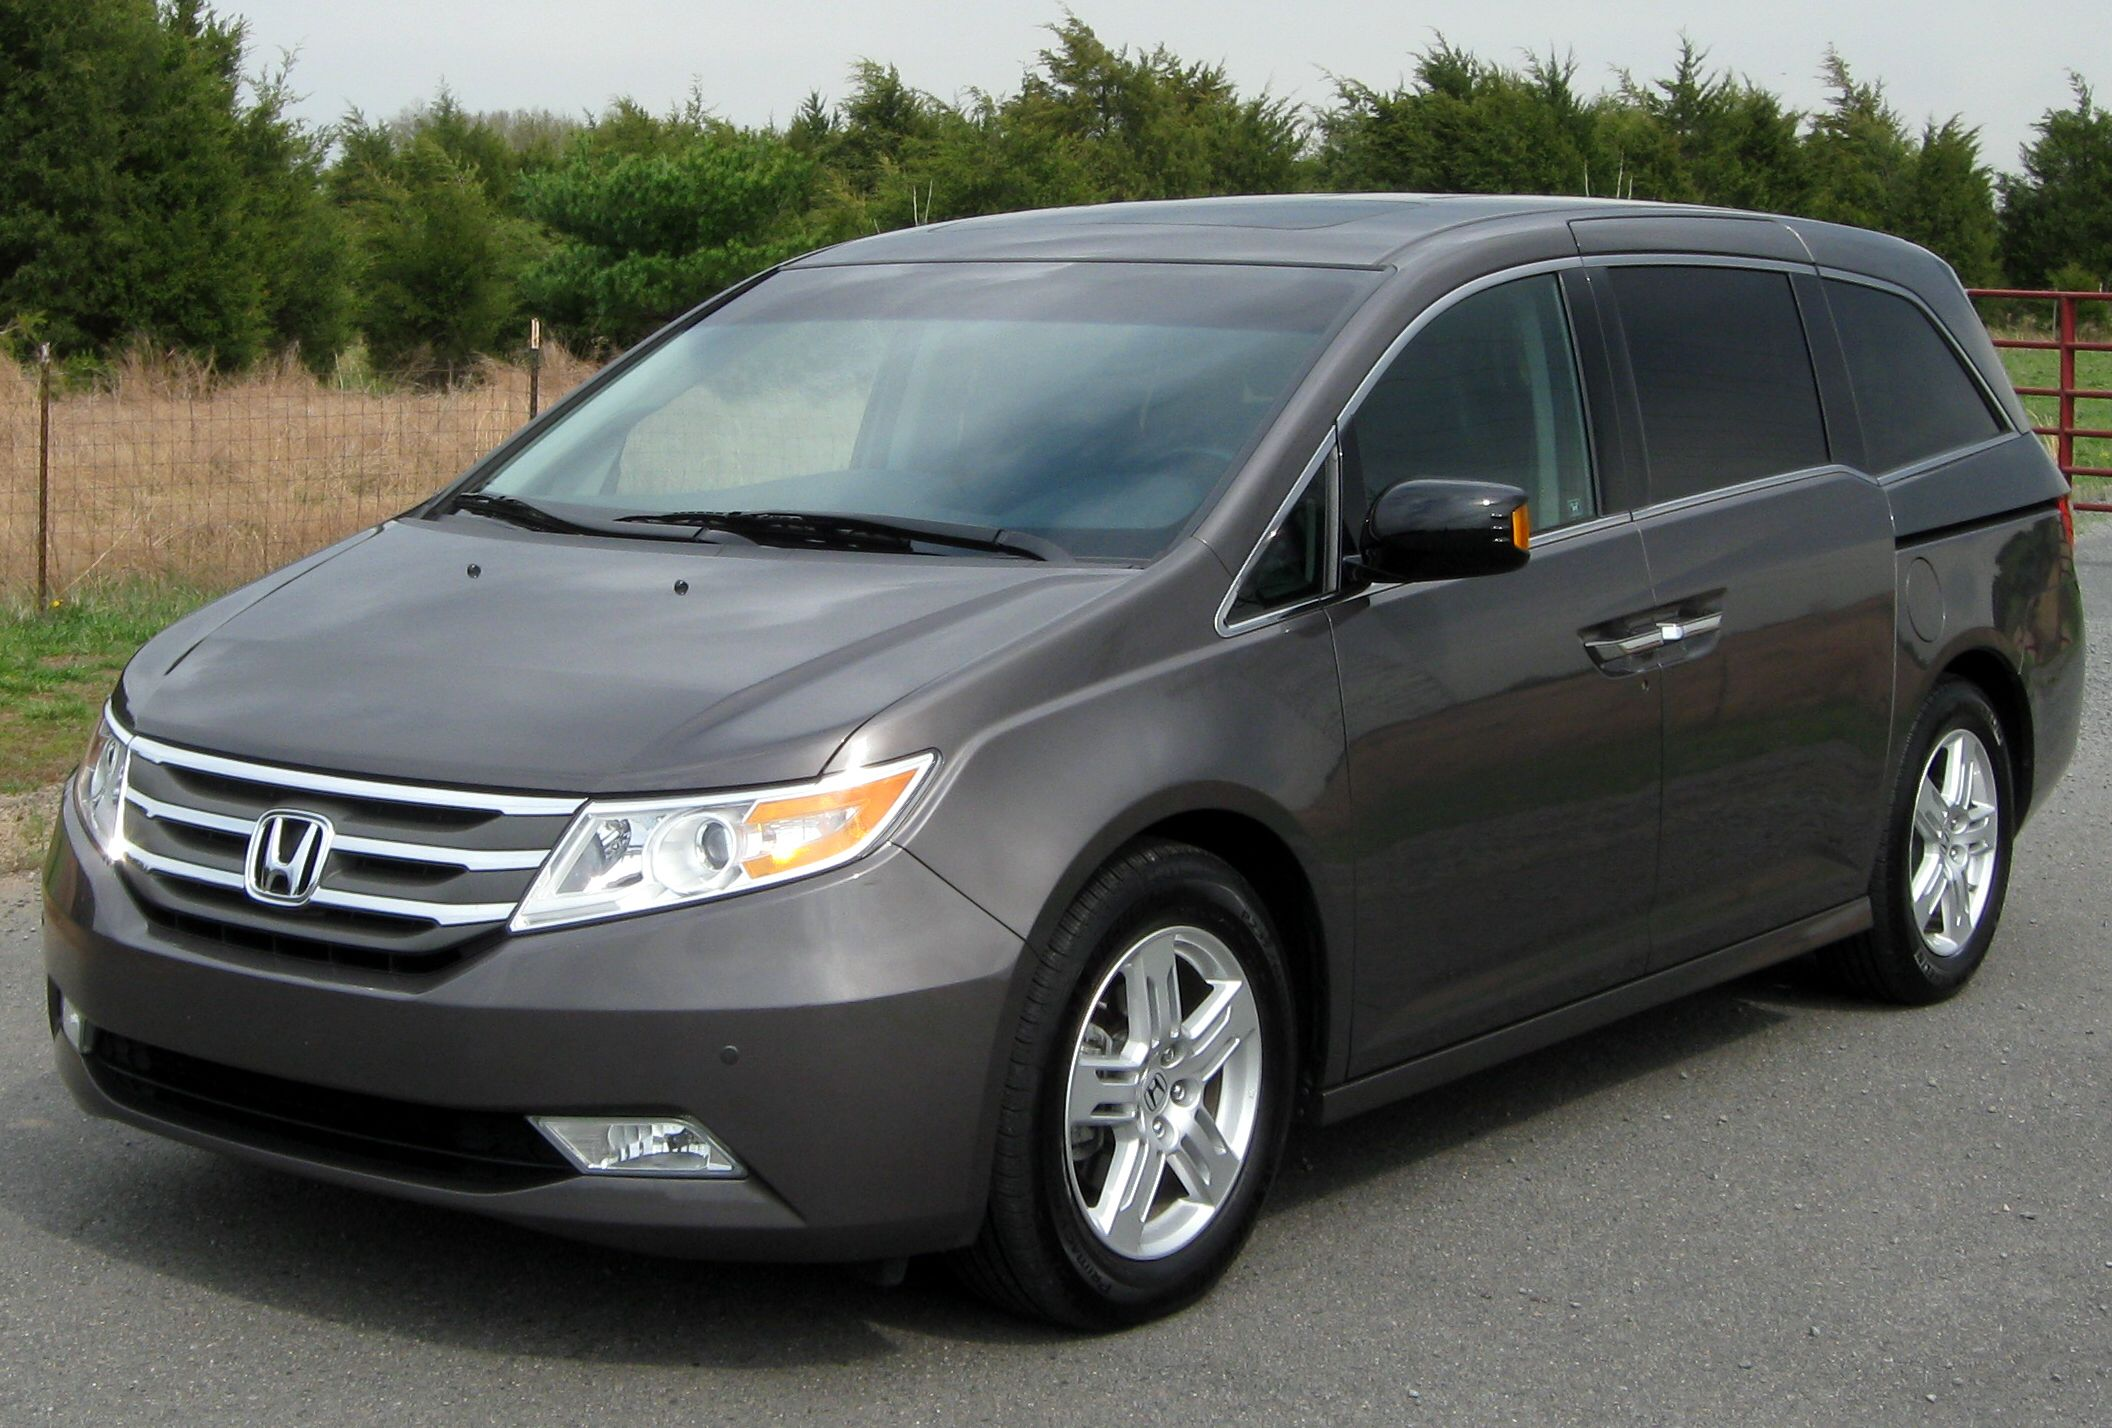 Honda Odyssey a car that is featured by the car pany Honda and